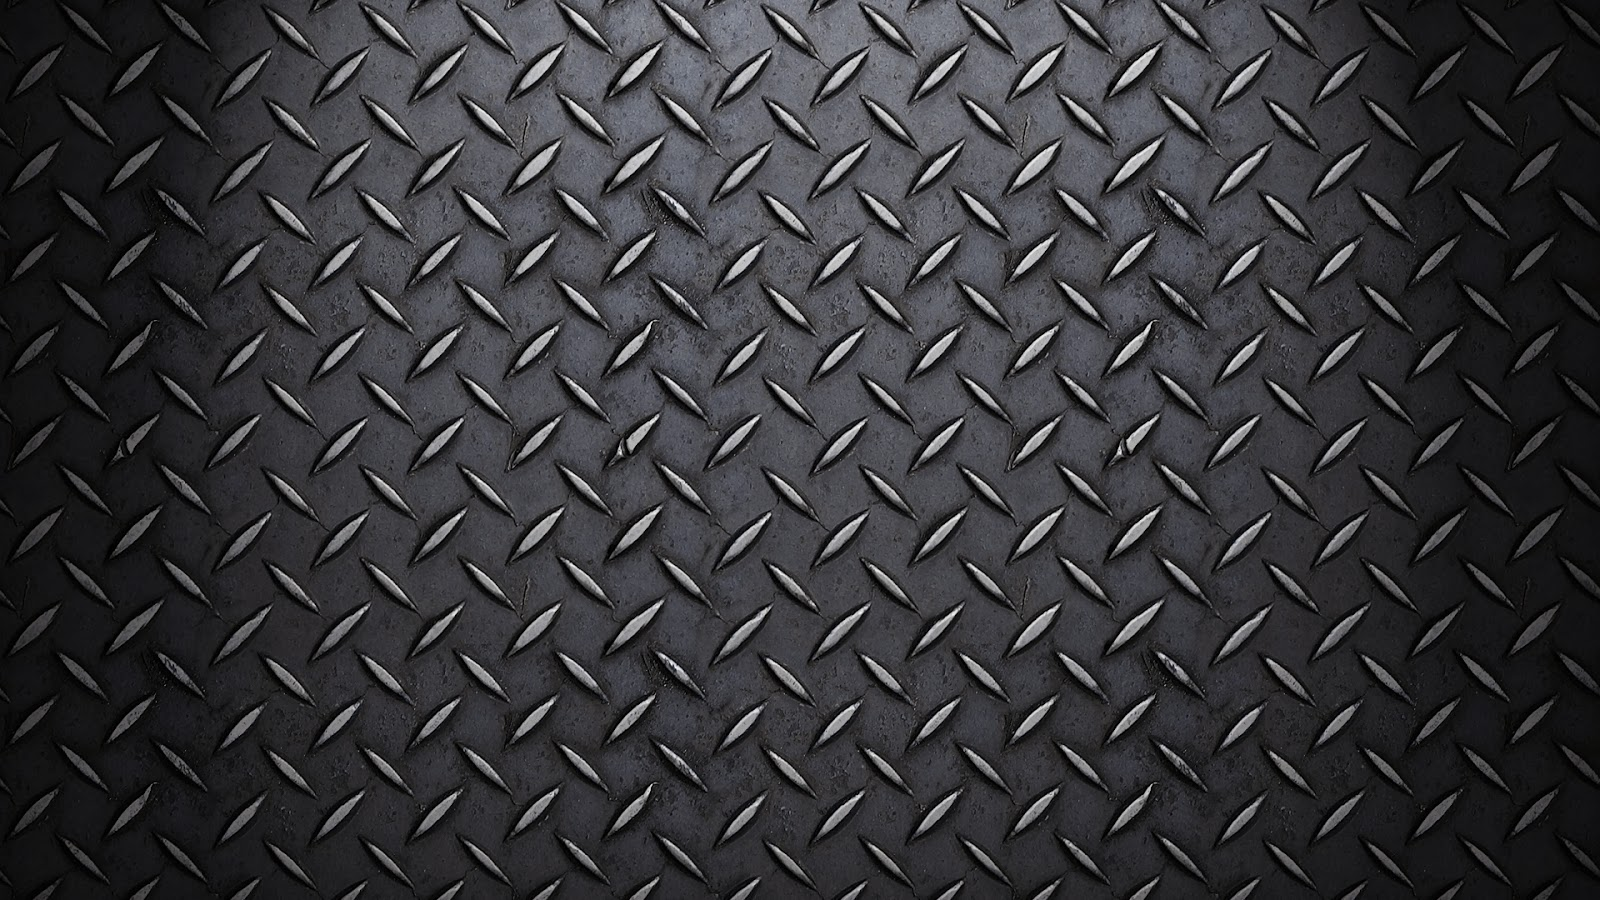 texture small design pattern background wallpapers HD for tabletsjpg 1600x900